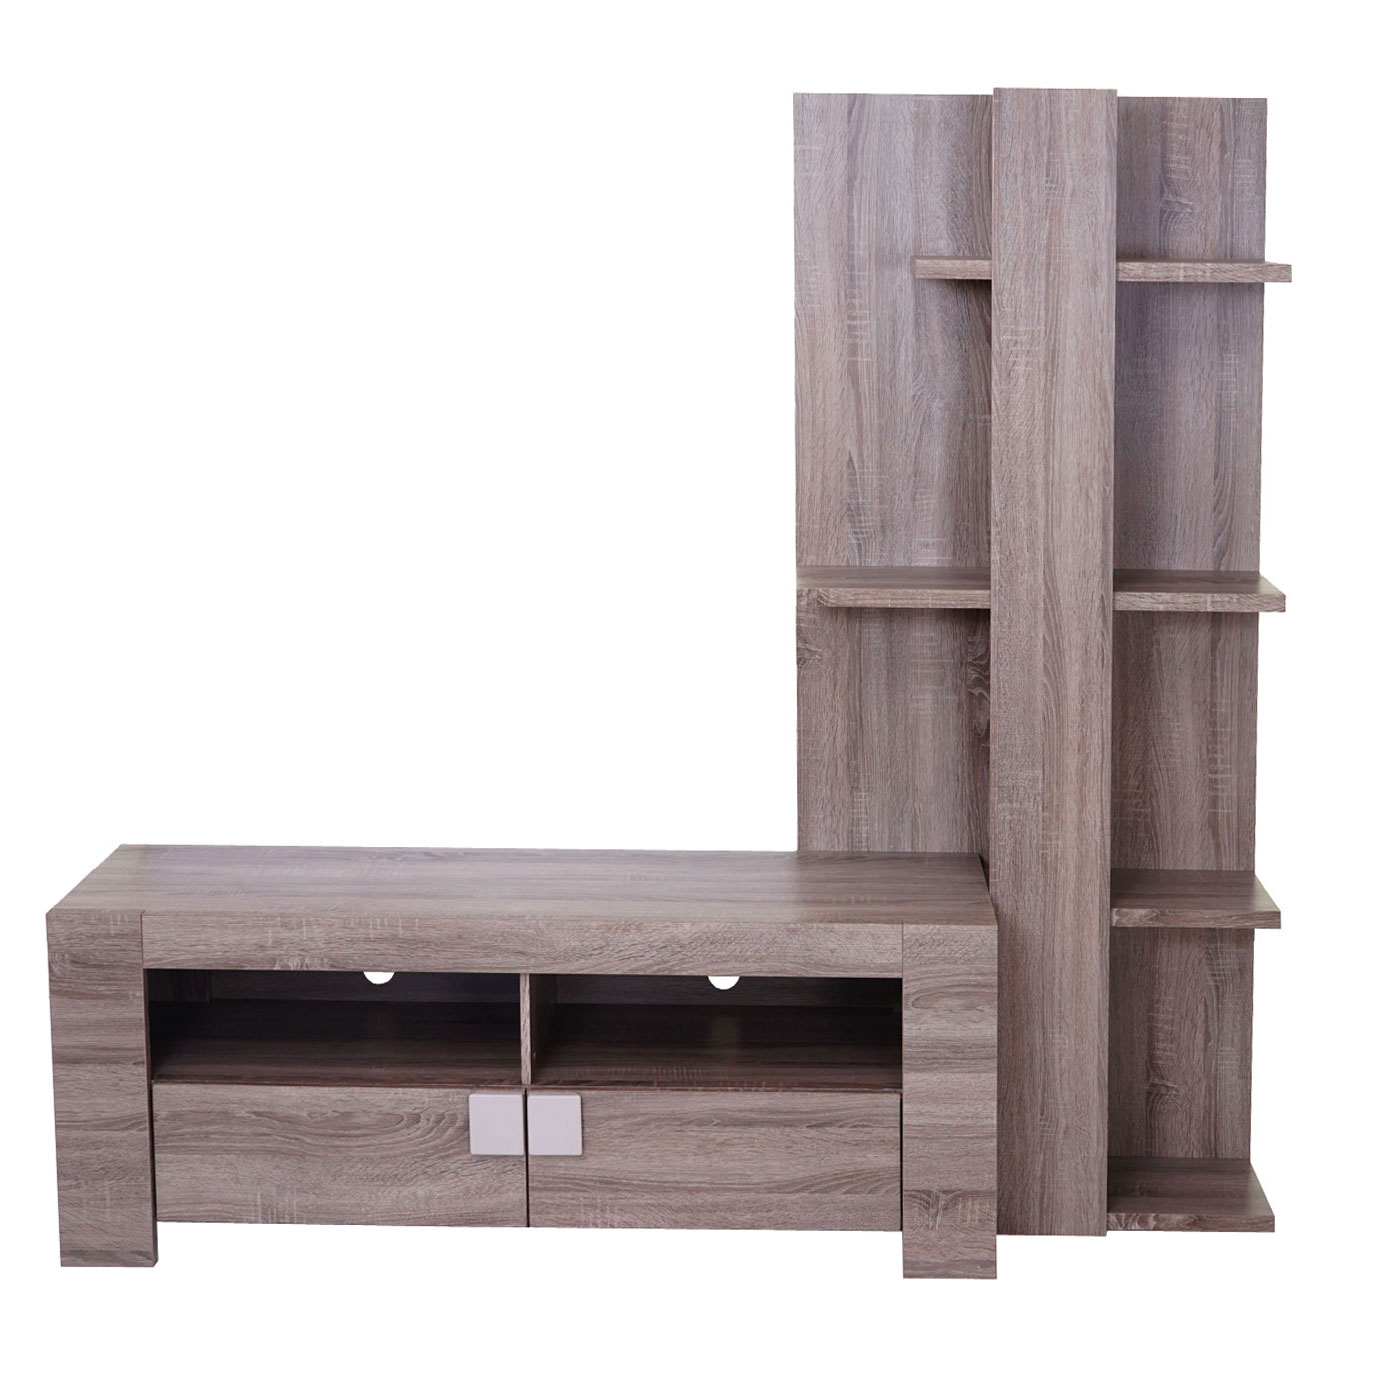 wohnwand lisburn wandregal raumteiler schrankwand 3d. Black Bedroom Furniture Sets. Home Design Ideas